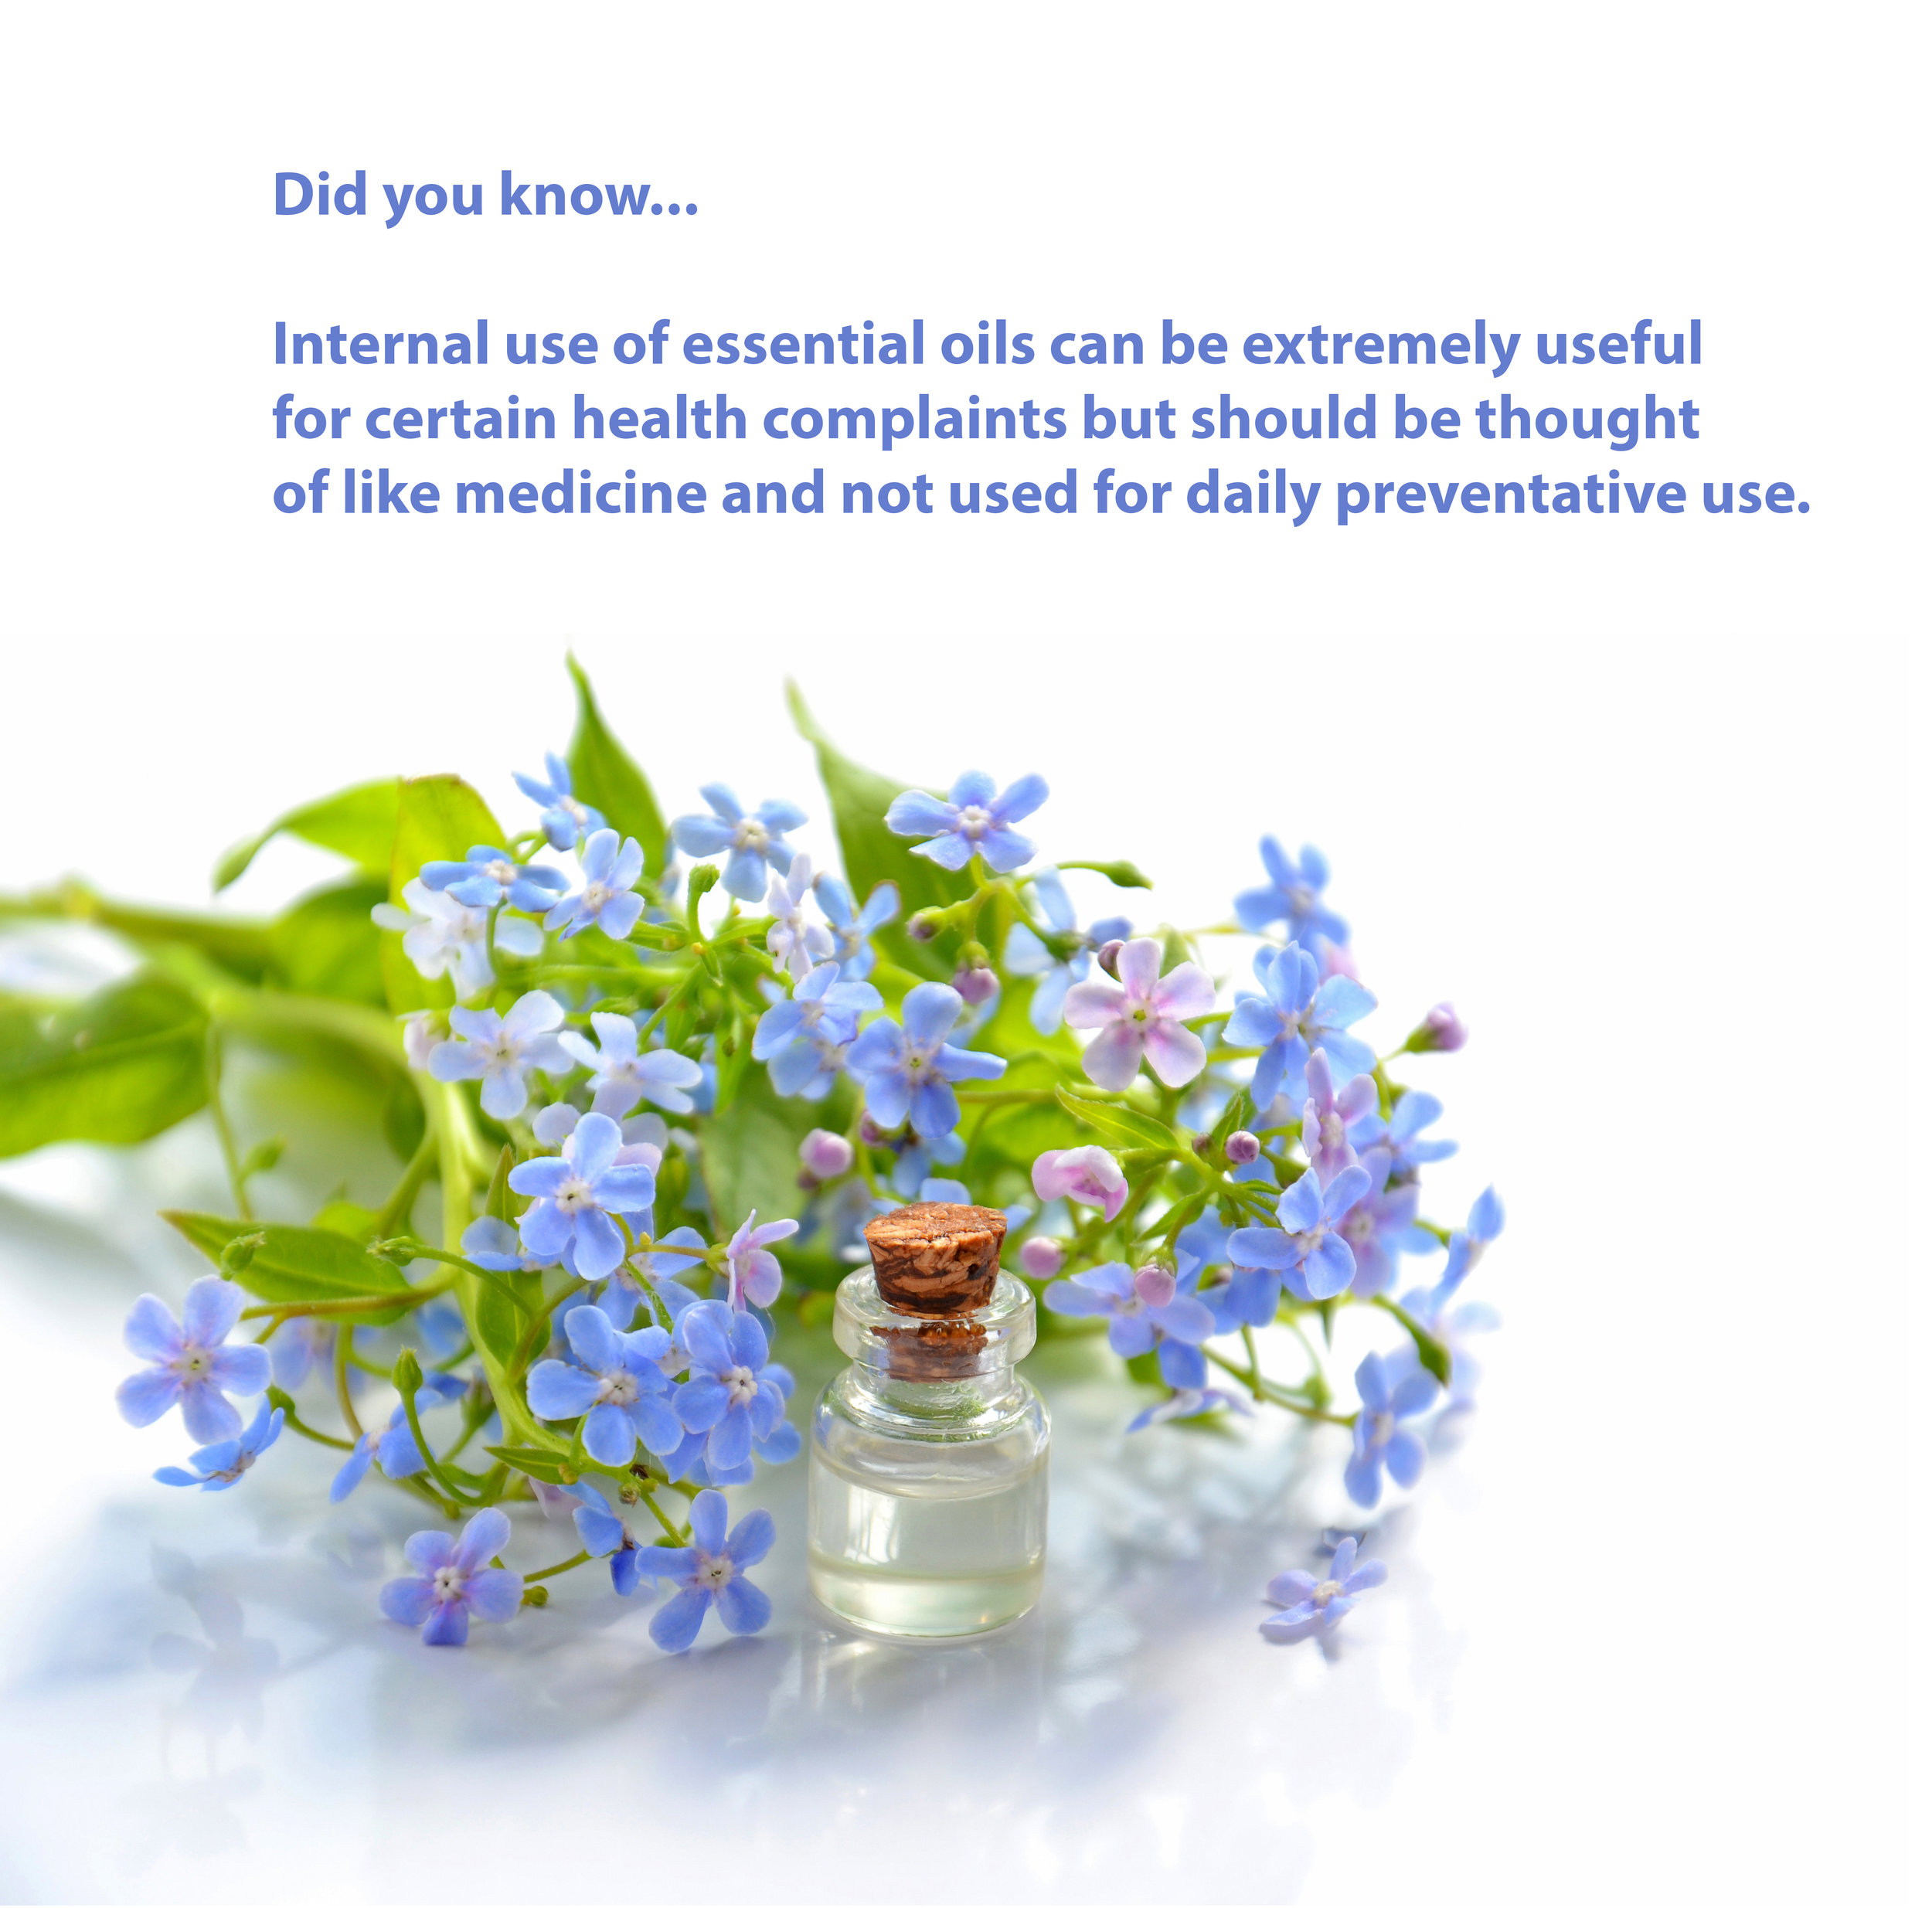 Internal use of oils3.jpg